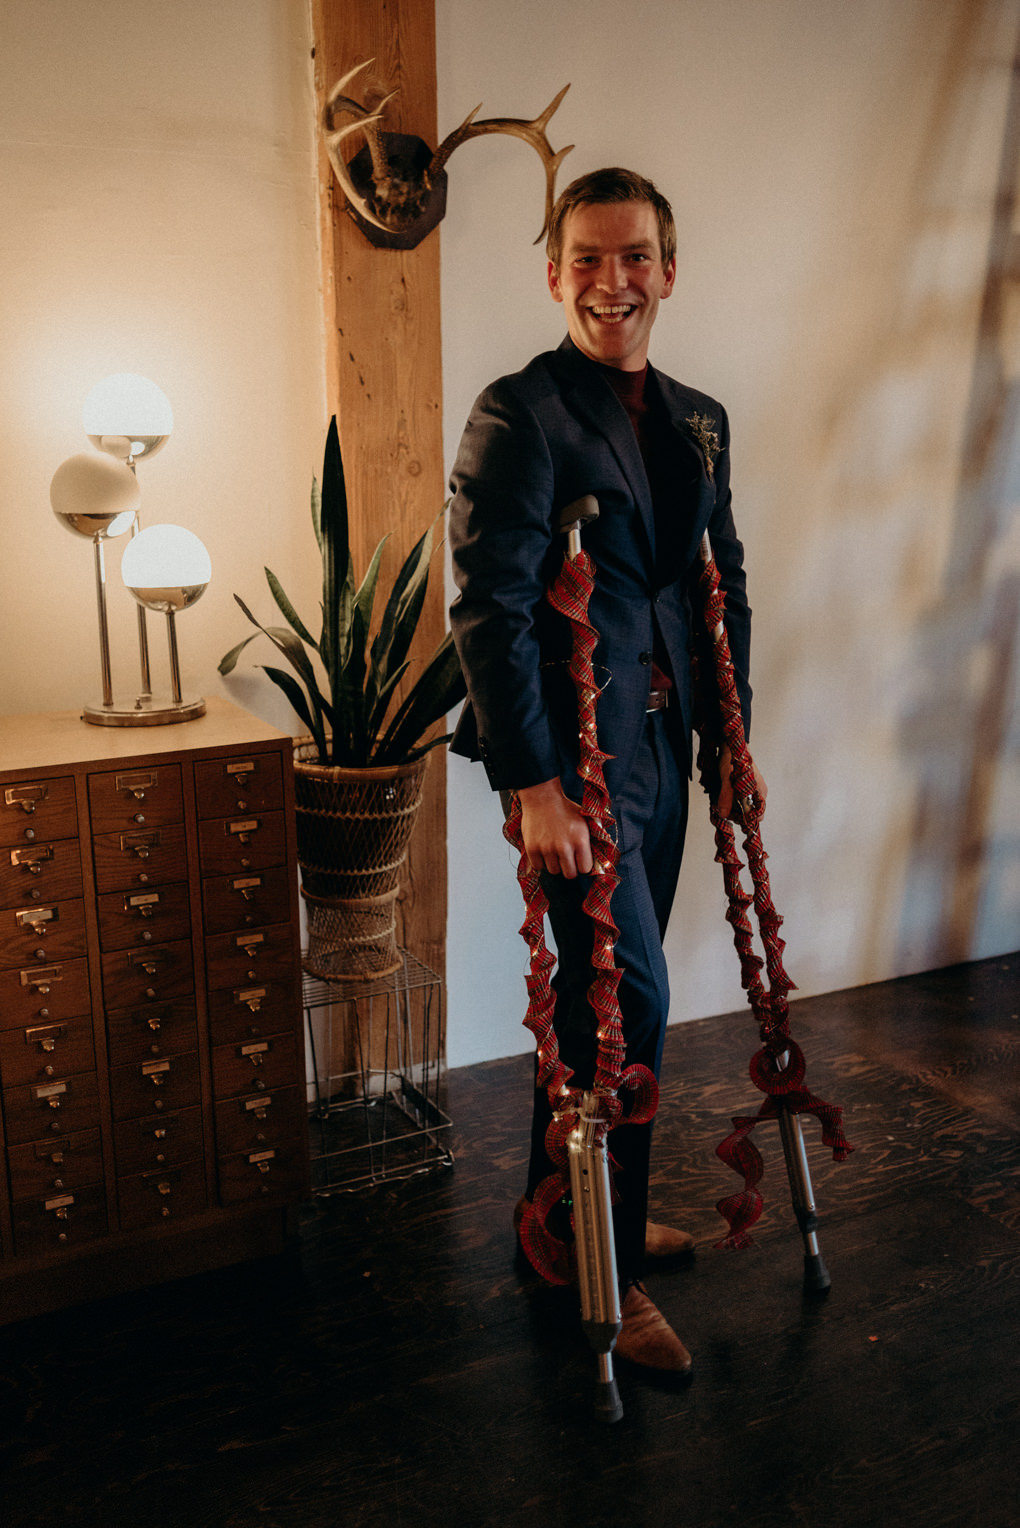 guest with crutches at wedding